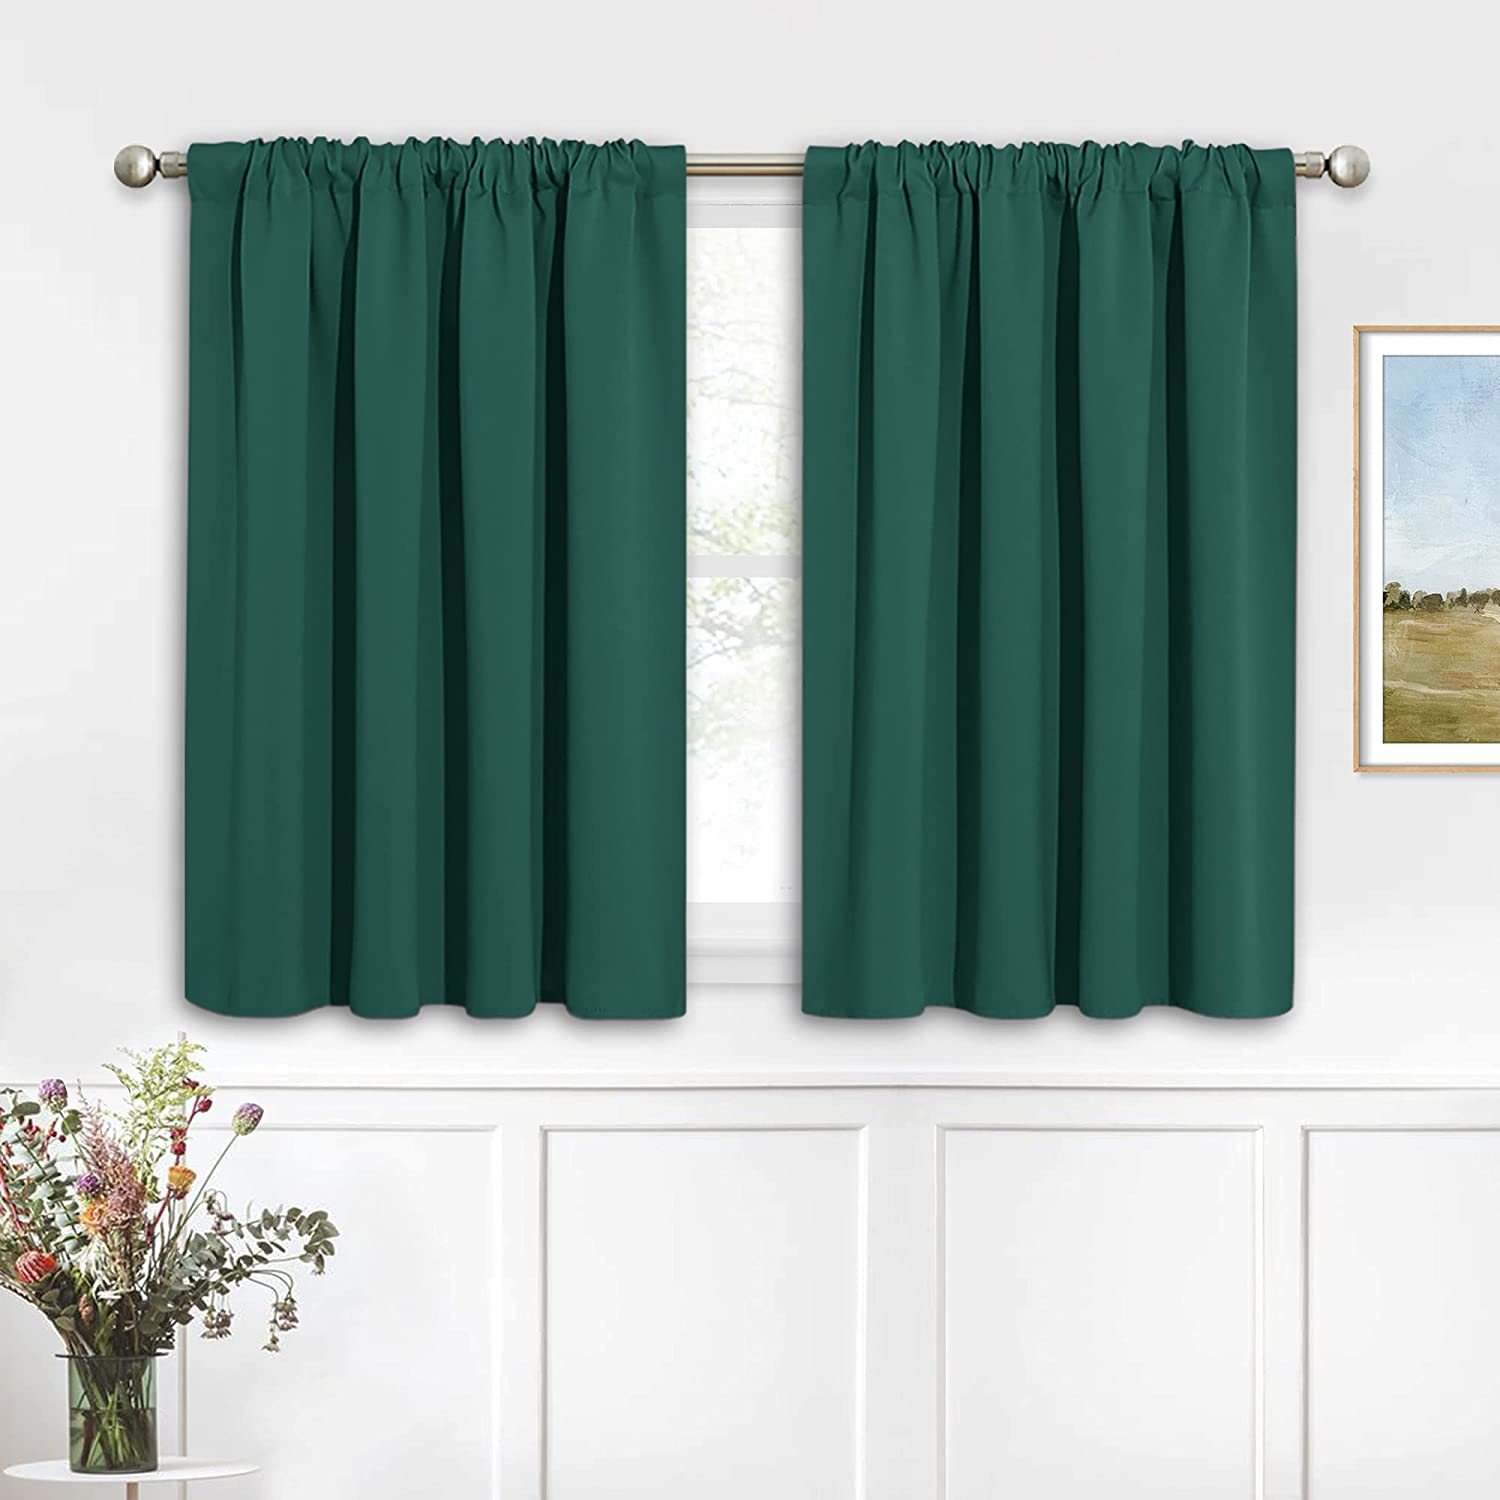 RYB HOME Blackout Curtains for Bathroom - Solid Light Block Blinds Privacy Light Block Drapes for Kitchen Cabinet Kids Nursery Bedroom Laundry Cafe Window Decor, W 42 x L 36, Hunter Green, 1 Pair